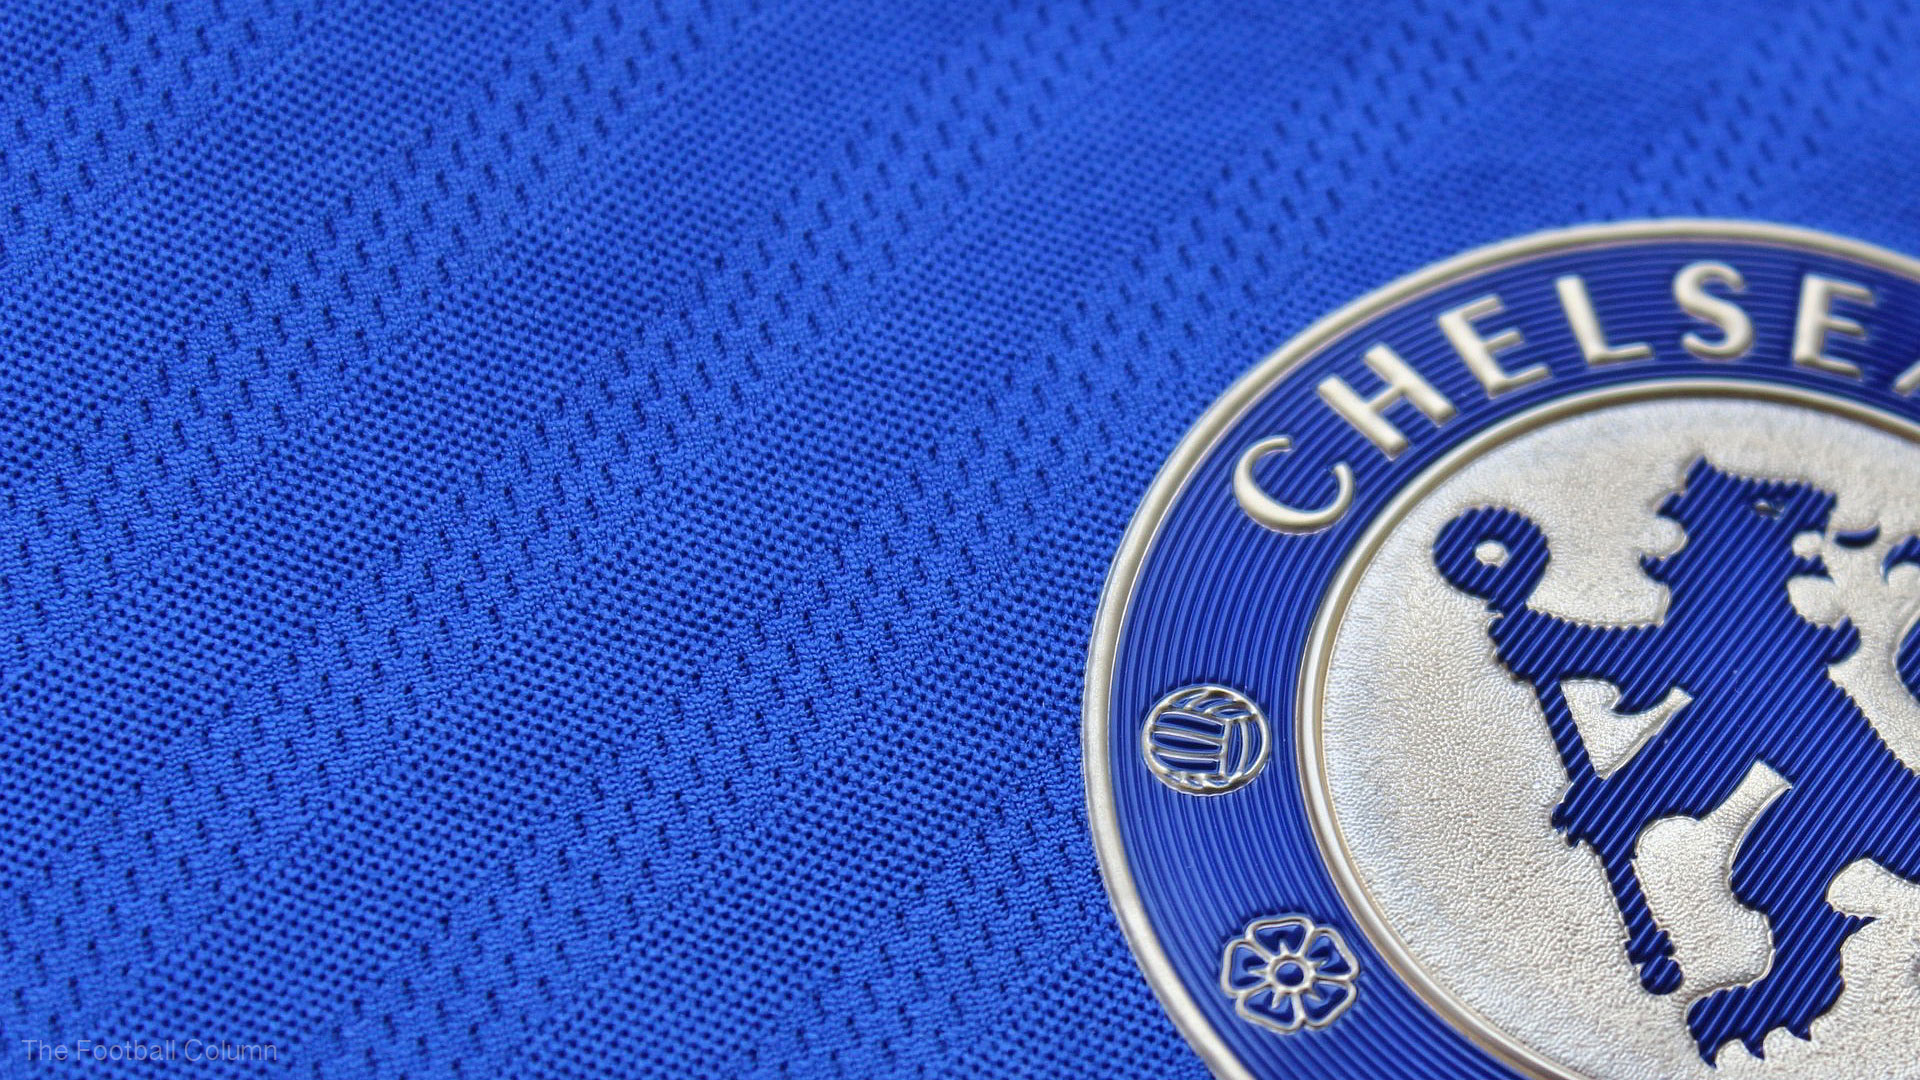 Chelsea Logo High Desktop PC And Mac Wallpaper